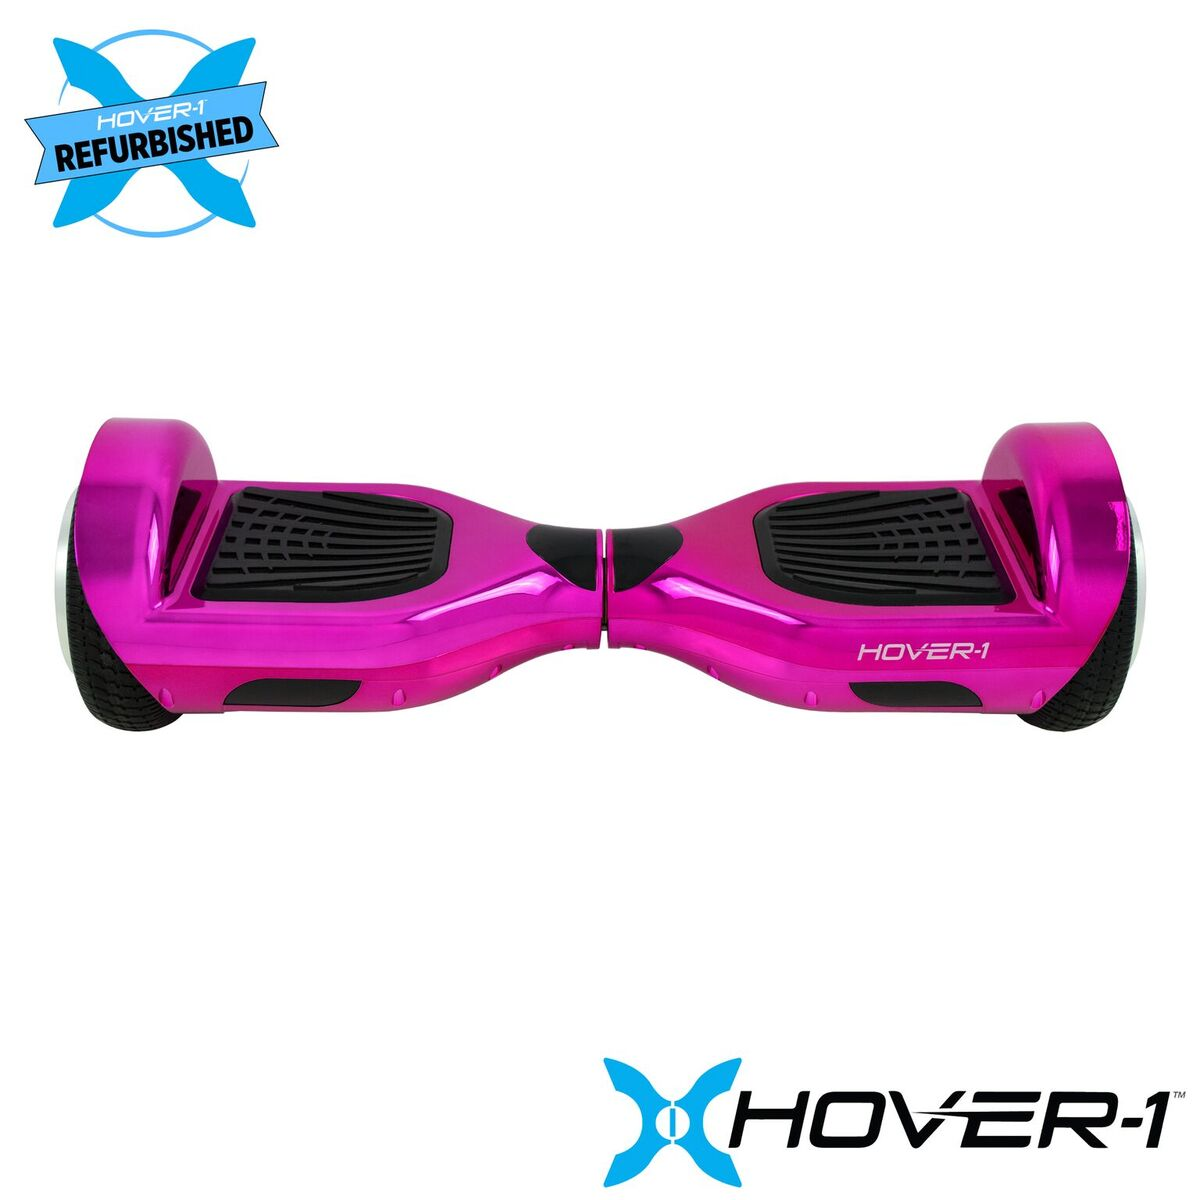 Hover-1 Refurbished Ultra Electric Self Balancing Hoverboard with LED Lights and 4 Hour Battery Life - Pink